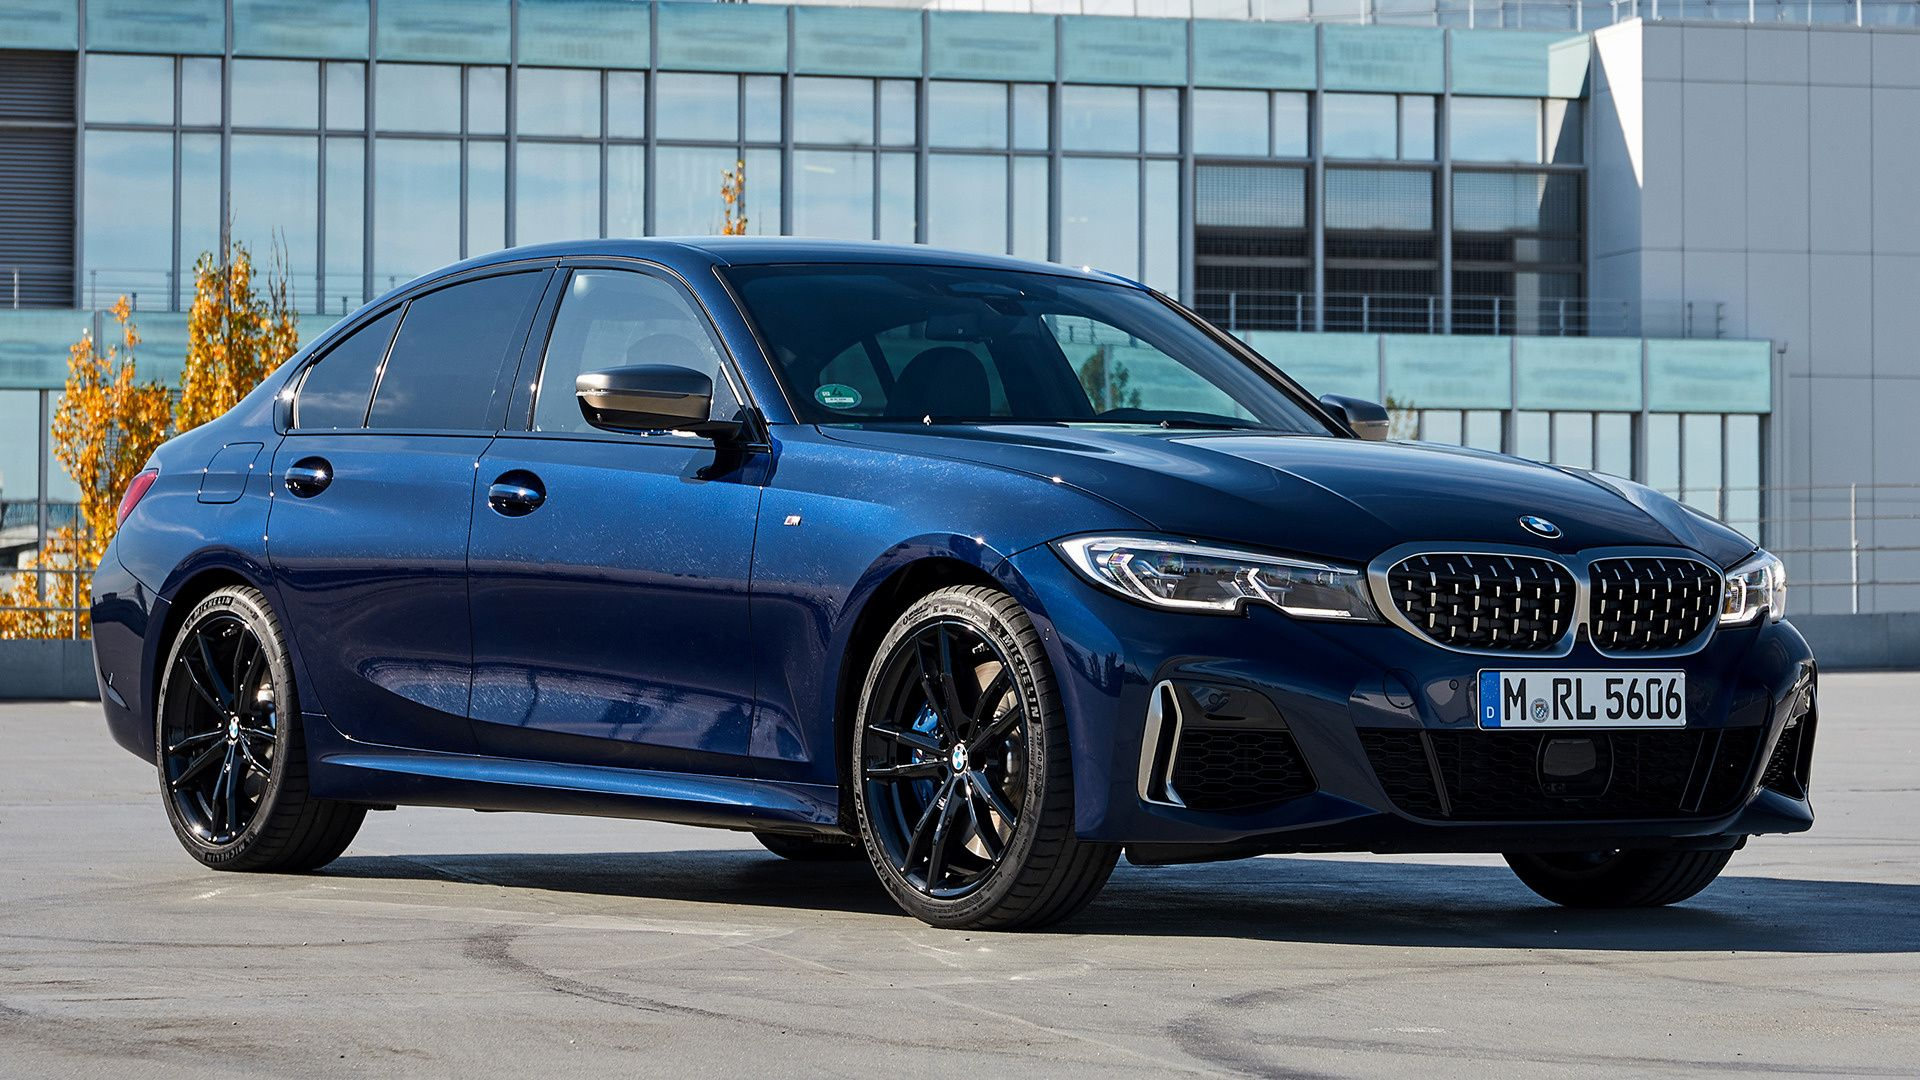 Vehicles Bmw M340i Bmw Compact Car Sedan Luxury Car Blue Car Car Hd Wallpaper Background Image Wallpaper Cart In 2020 Bmw Bmw Compact Bmw Wallpapers